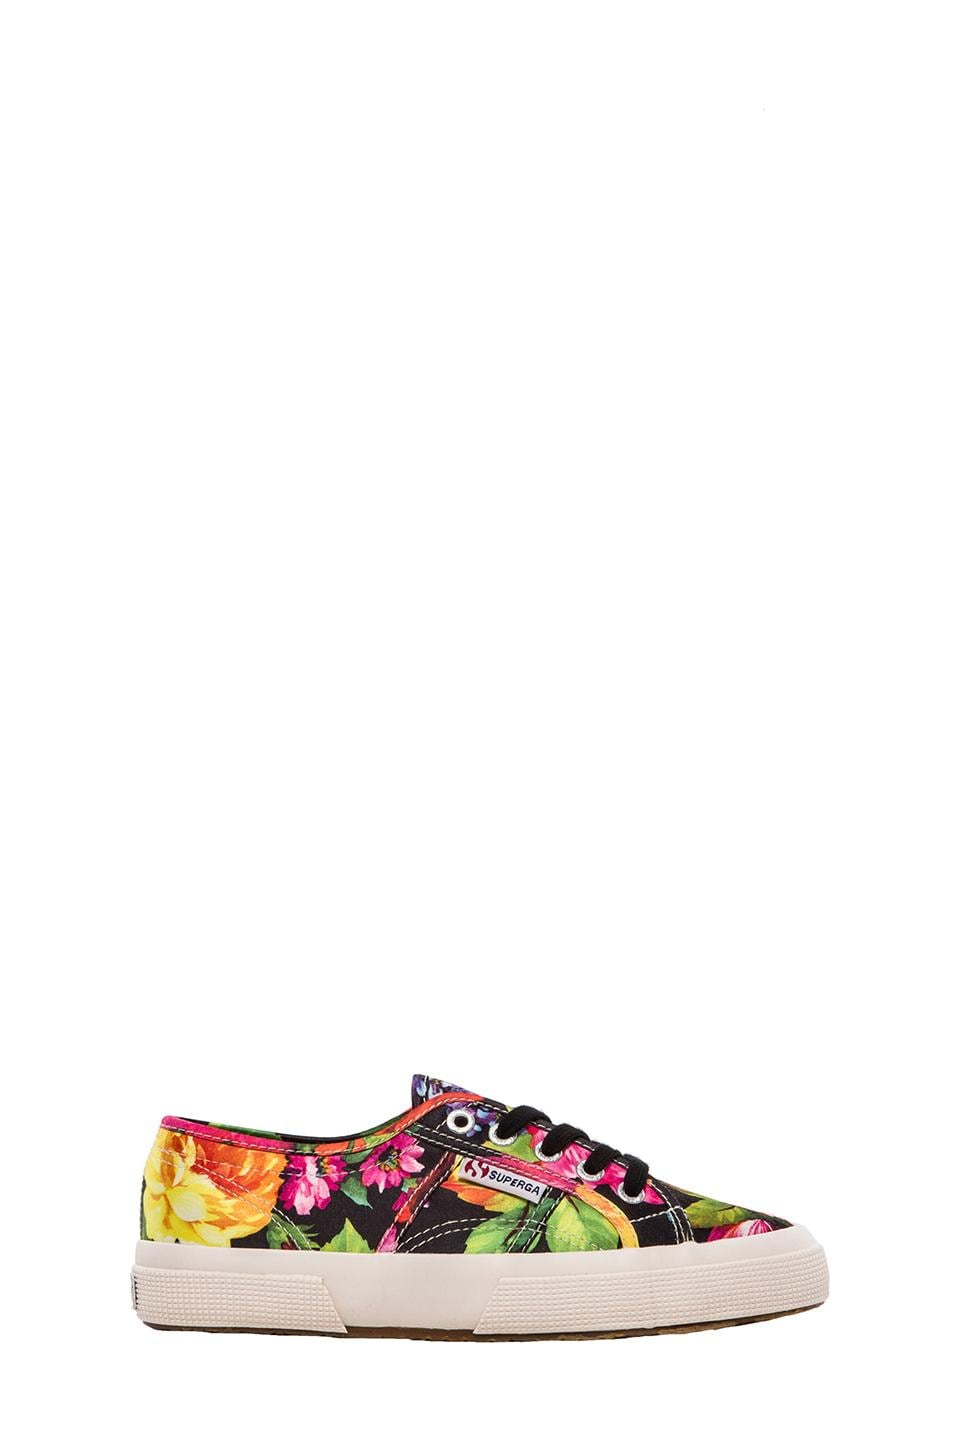 Superga Fantasy Sneakers in Hawaiian Floral Black